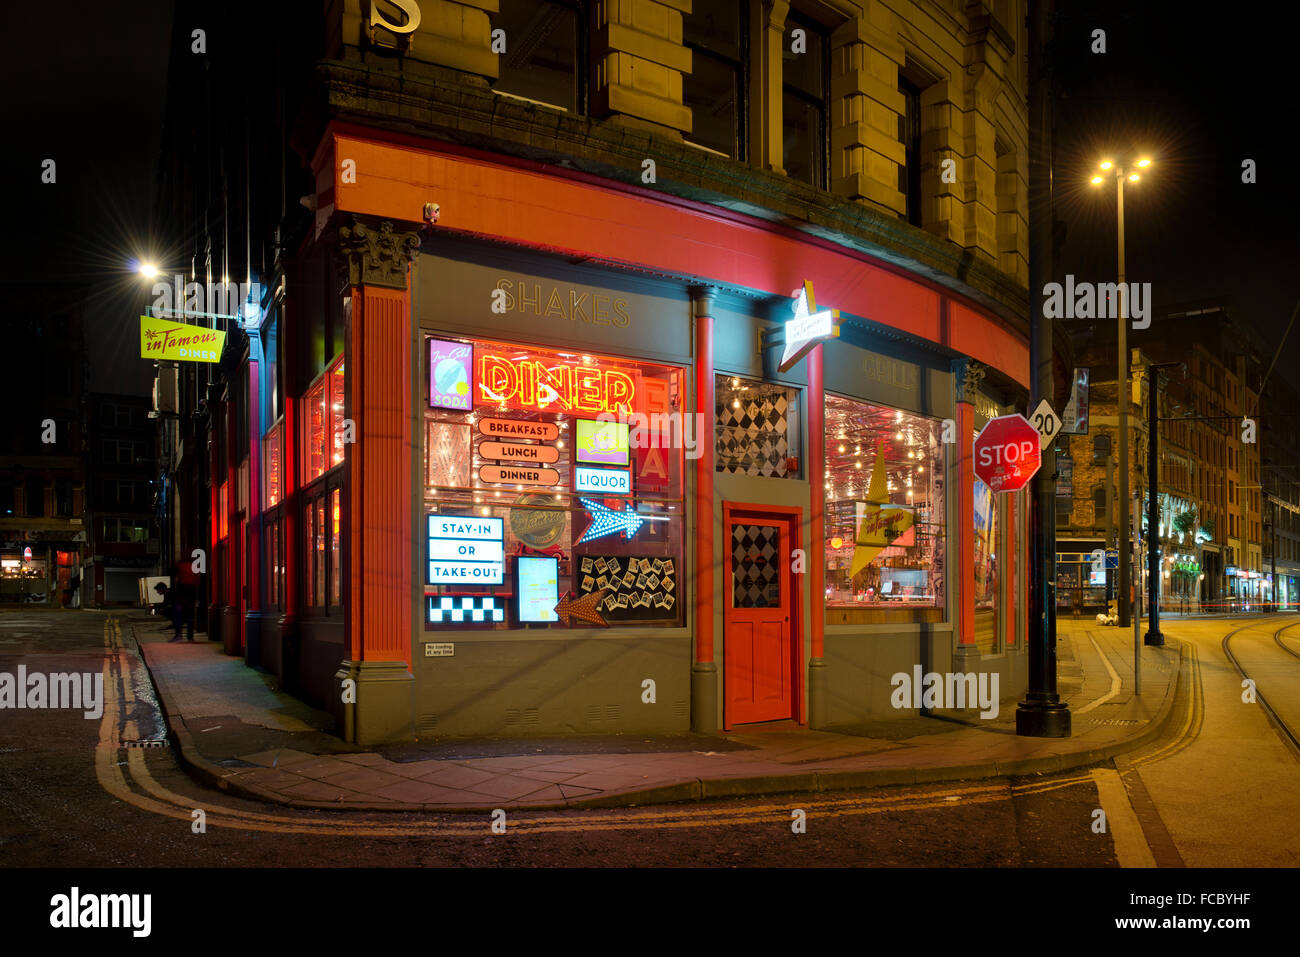 The Infamous retro American themed restaurant located on High Street in Manchester City Centre. - Stock Image